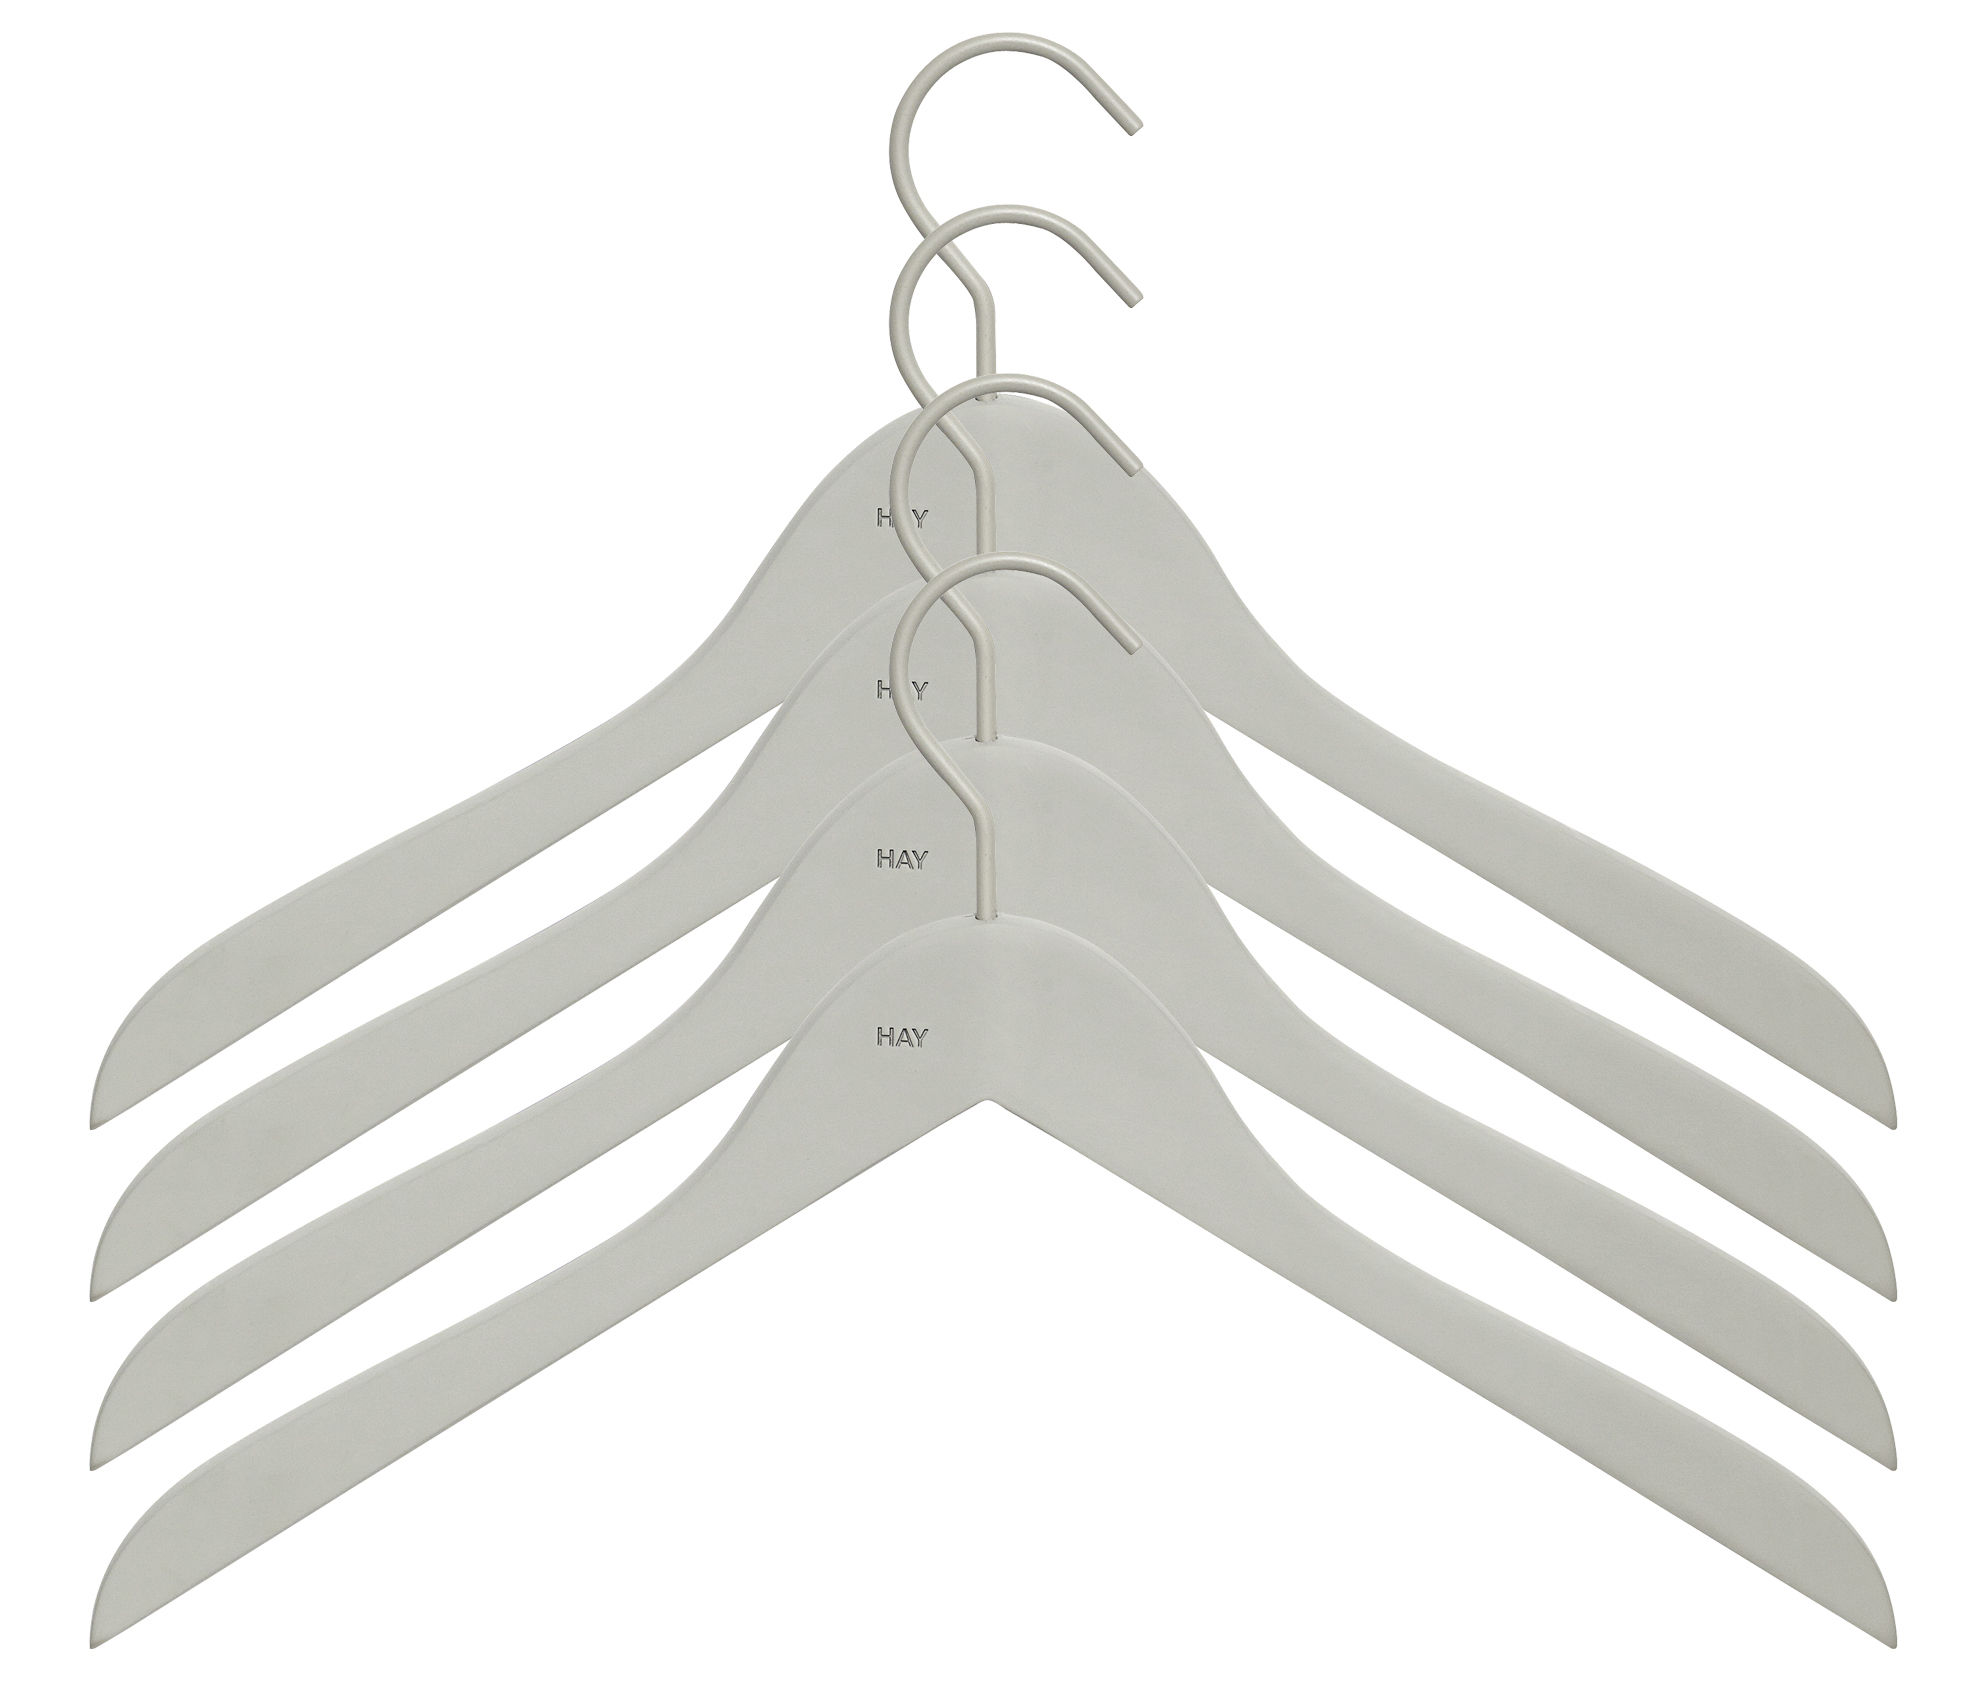 Decoration - Coat Stands & Hooks - Soft Coat Hanger - Slim - Set of 4 by Hay - Grey - Rubber, Wood